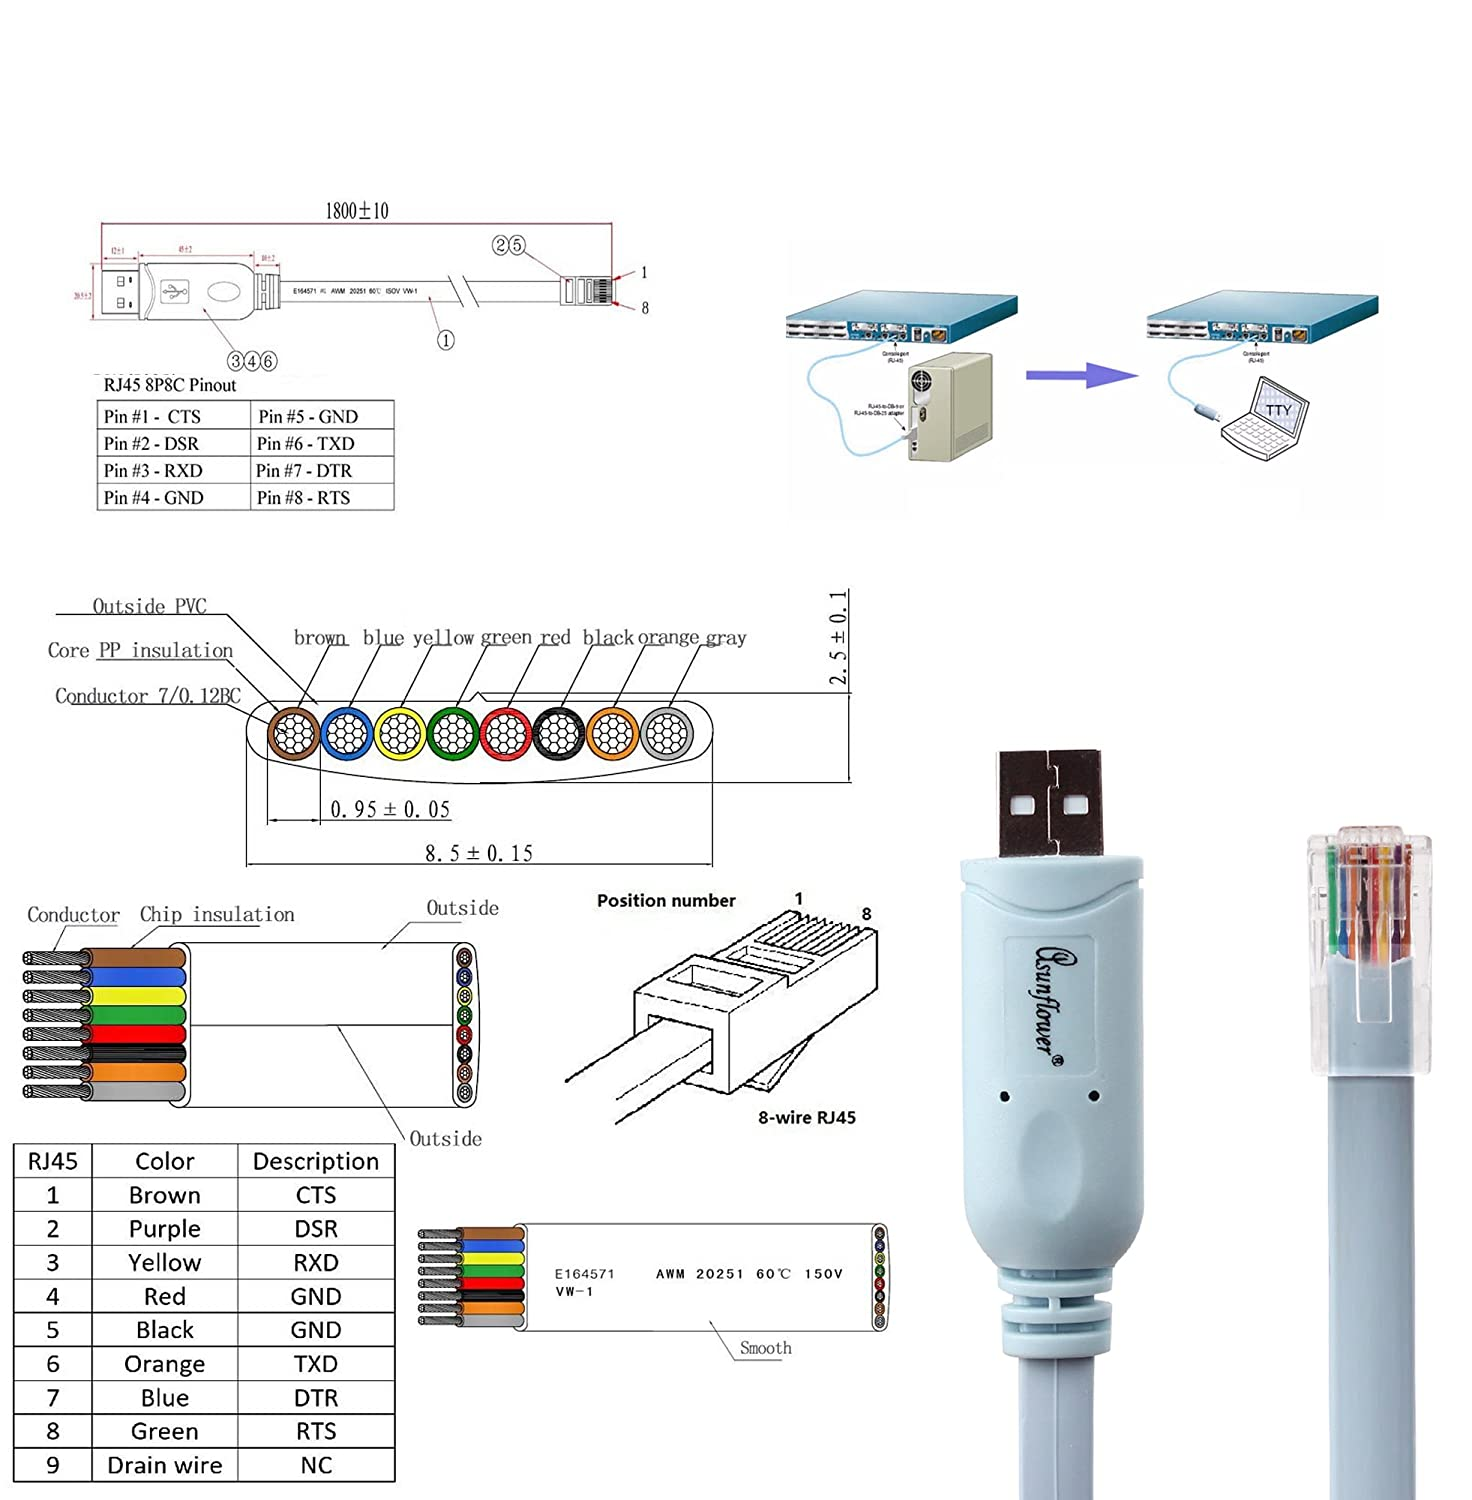 usb to rj45 wiring diagram wiring diagrams USB to RJ11 Pinout rj45 to usb wiring diagram wiring diagramusb rj45 wiring diagram wiring diagramusb rj45 wiring diagram